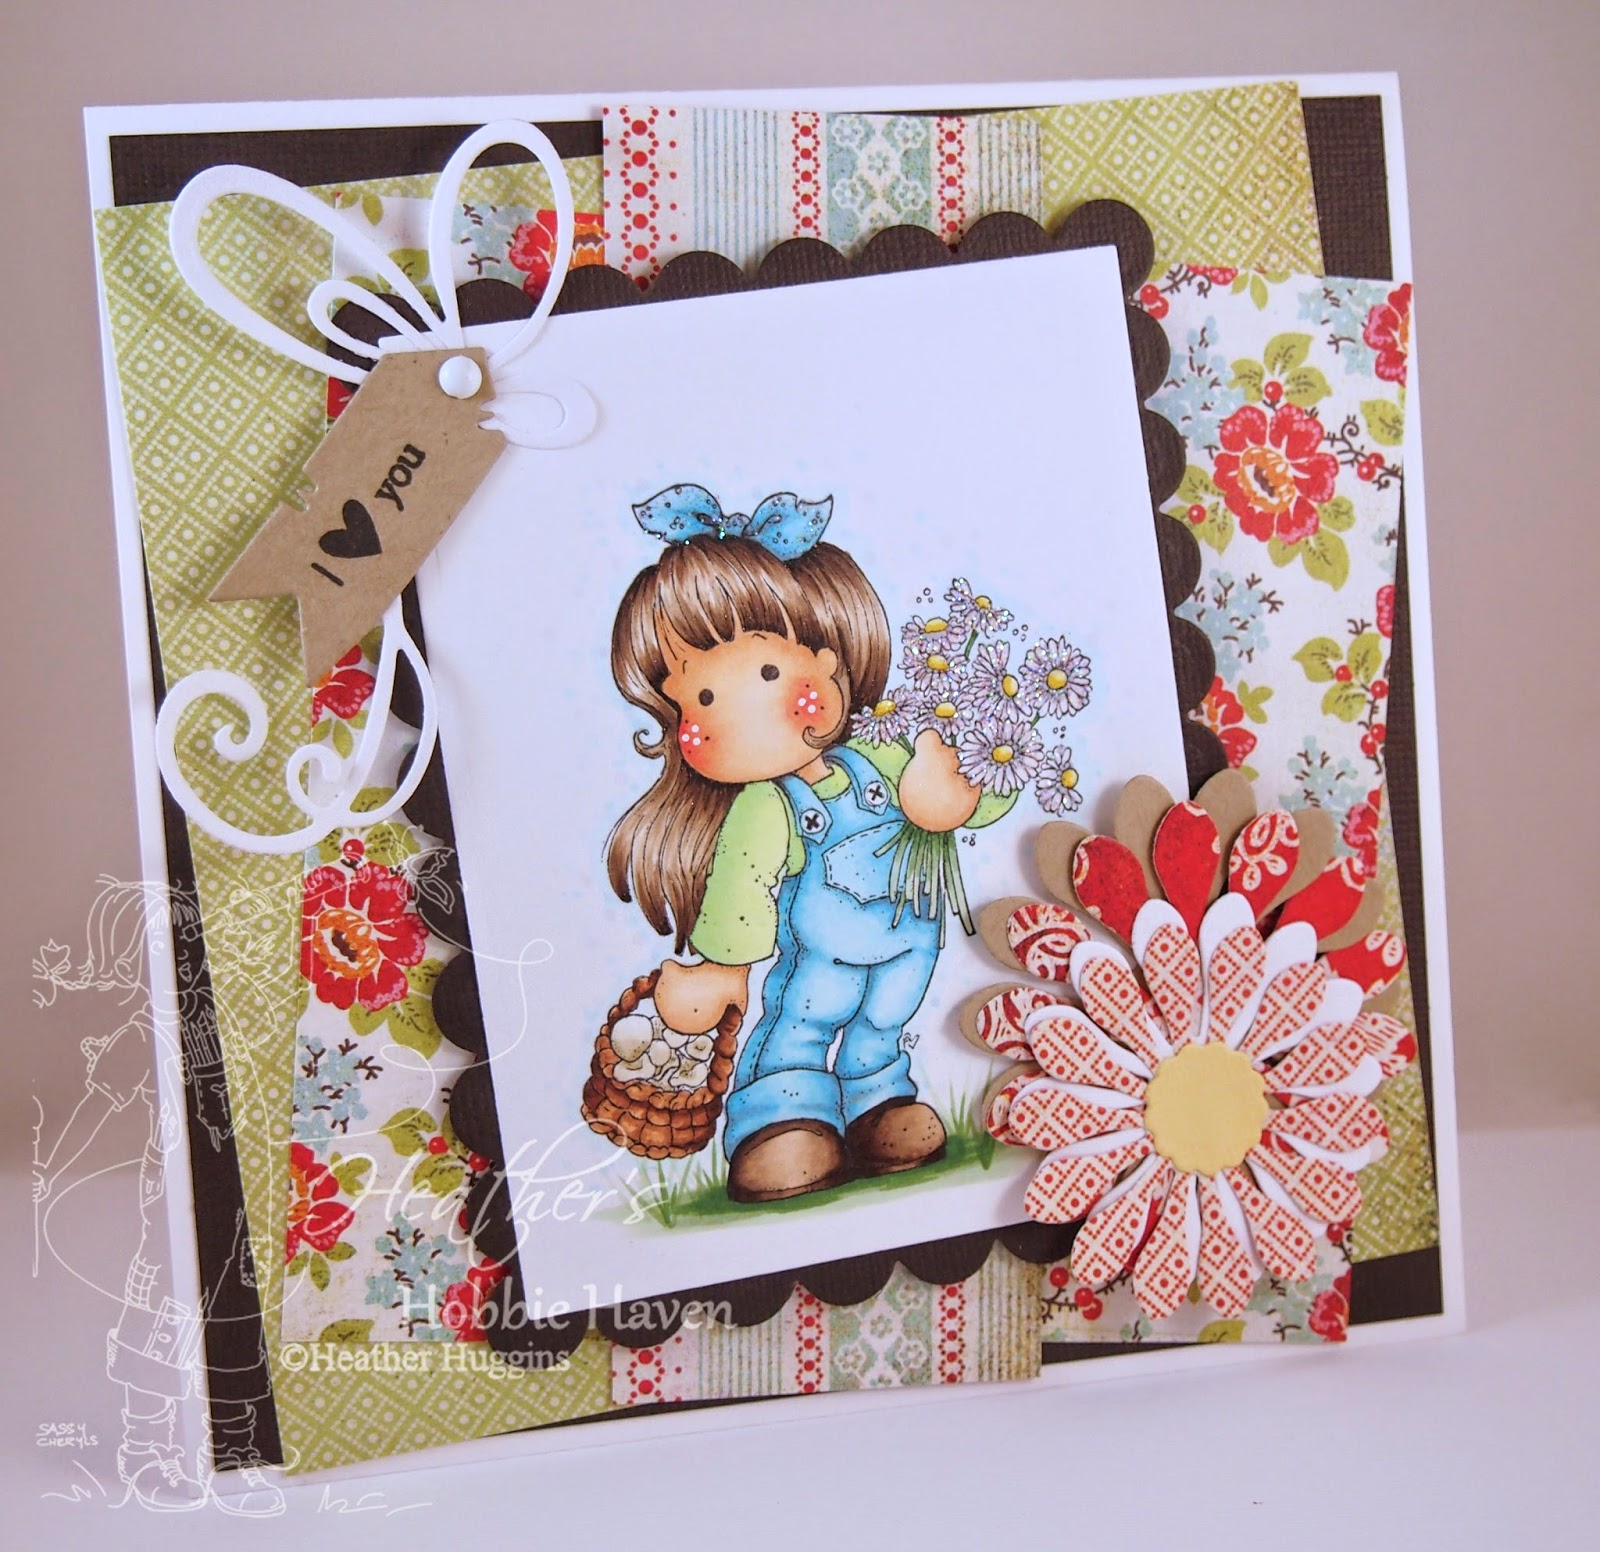 Heather's Hobbie Haven - Tilda with Daisy and Mushrooms Card Kit